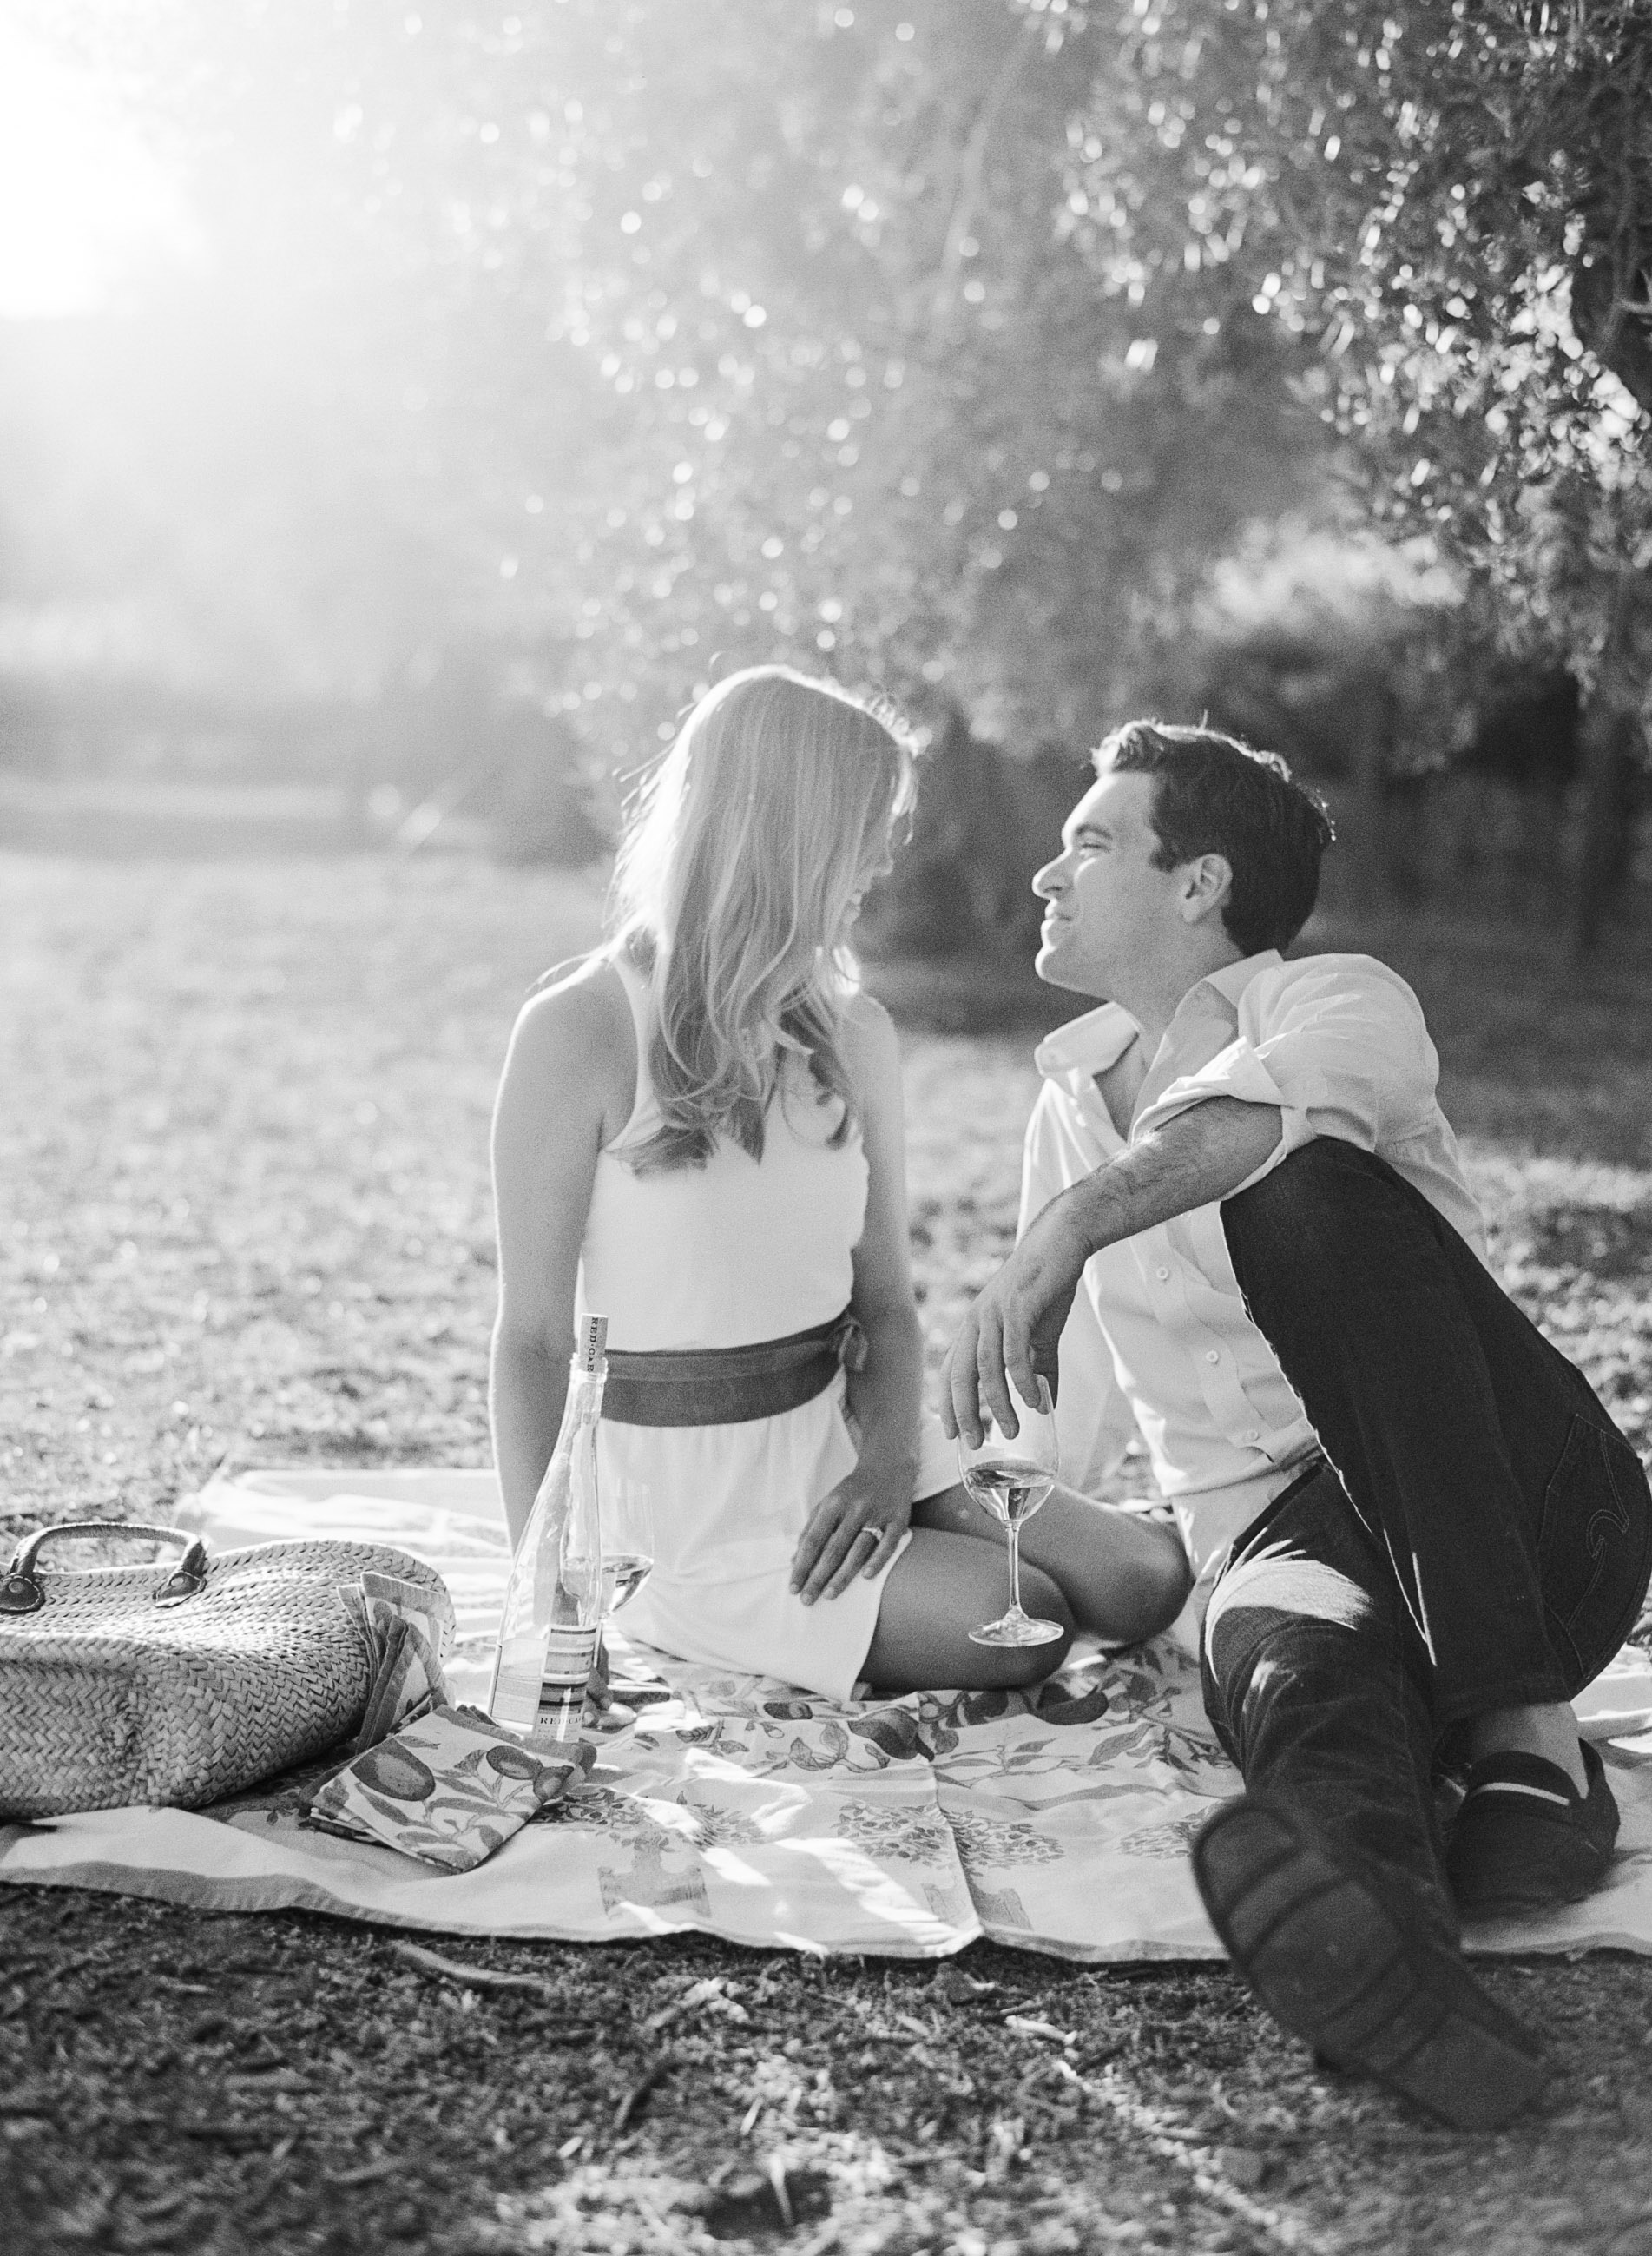 Couple shares a bottle of wine on a picnic blanket in a Napa Valley vineyard  during an engagement session with Sylvie Gil.